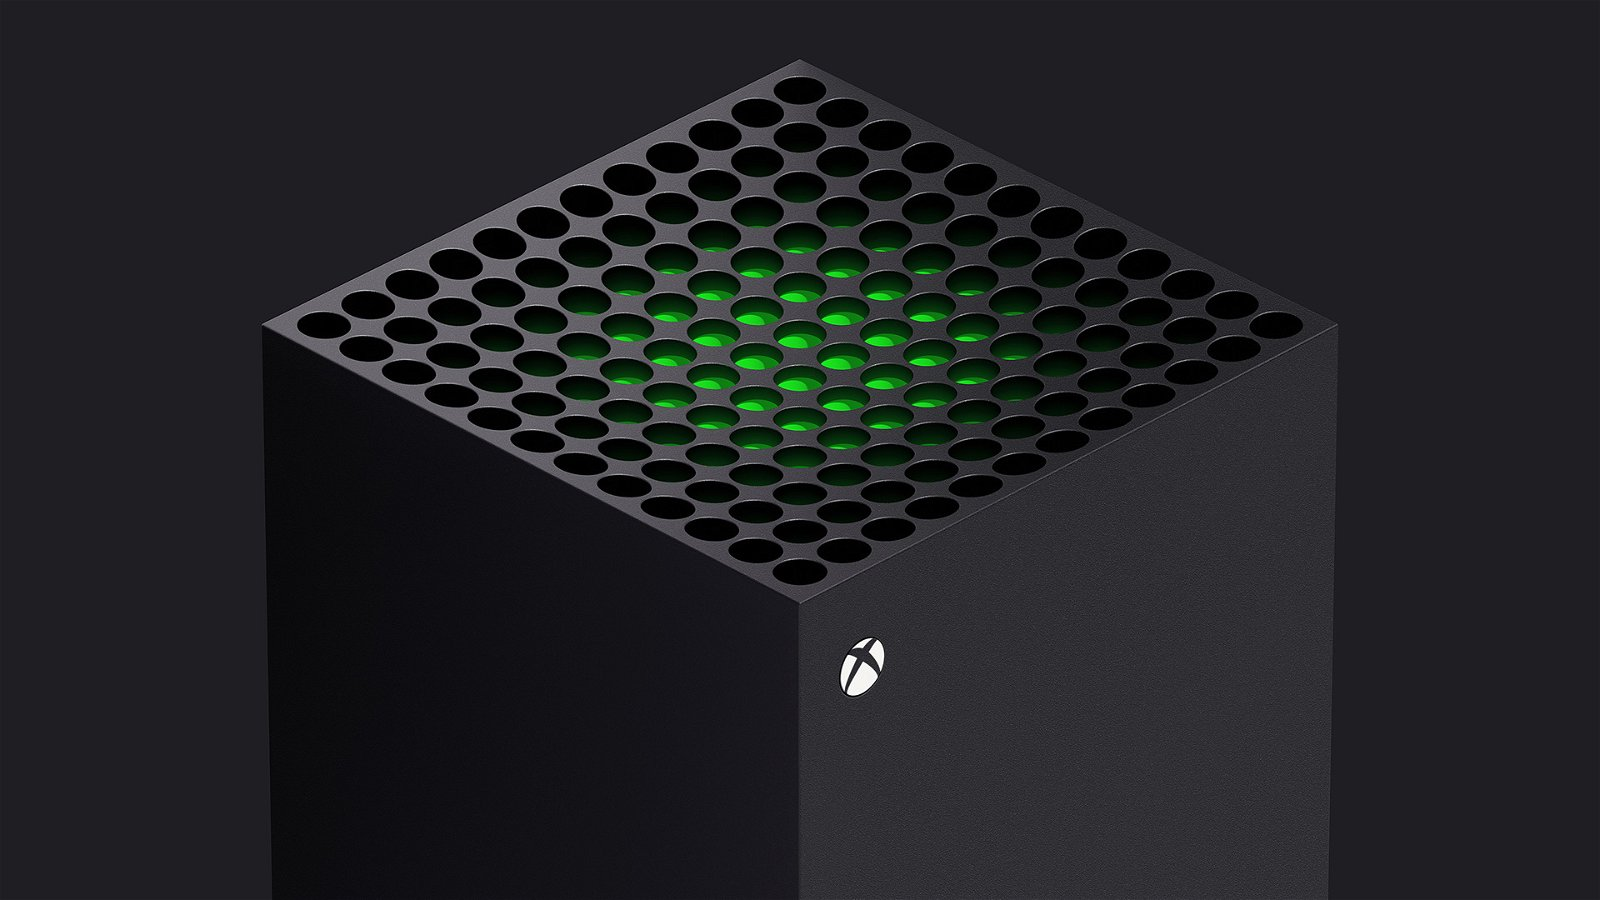 Buyers Guide: The Best Tech and Accessories To Pair With Your New Next Gen Console 5